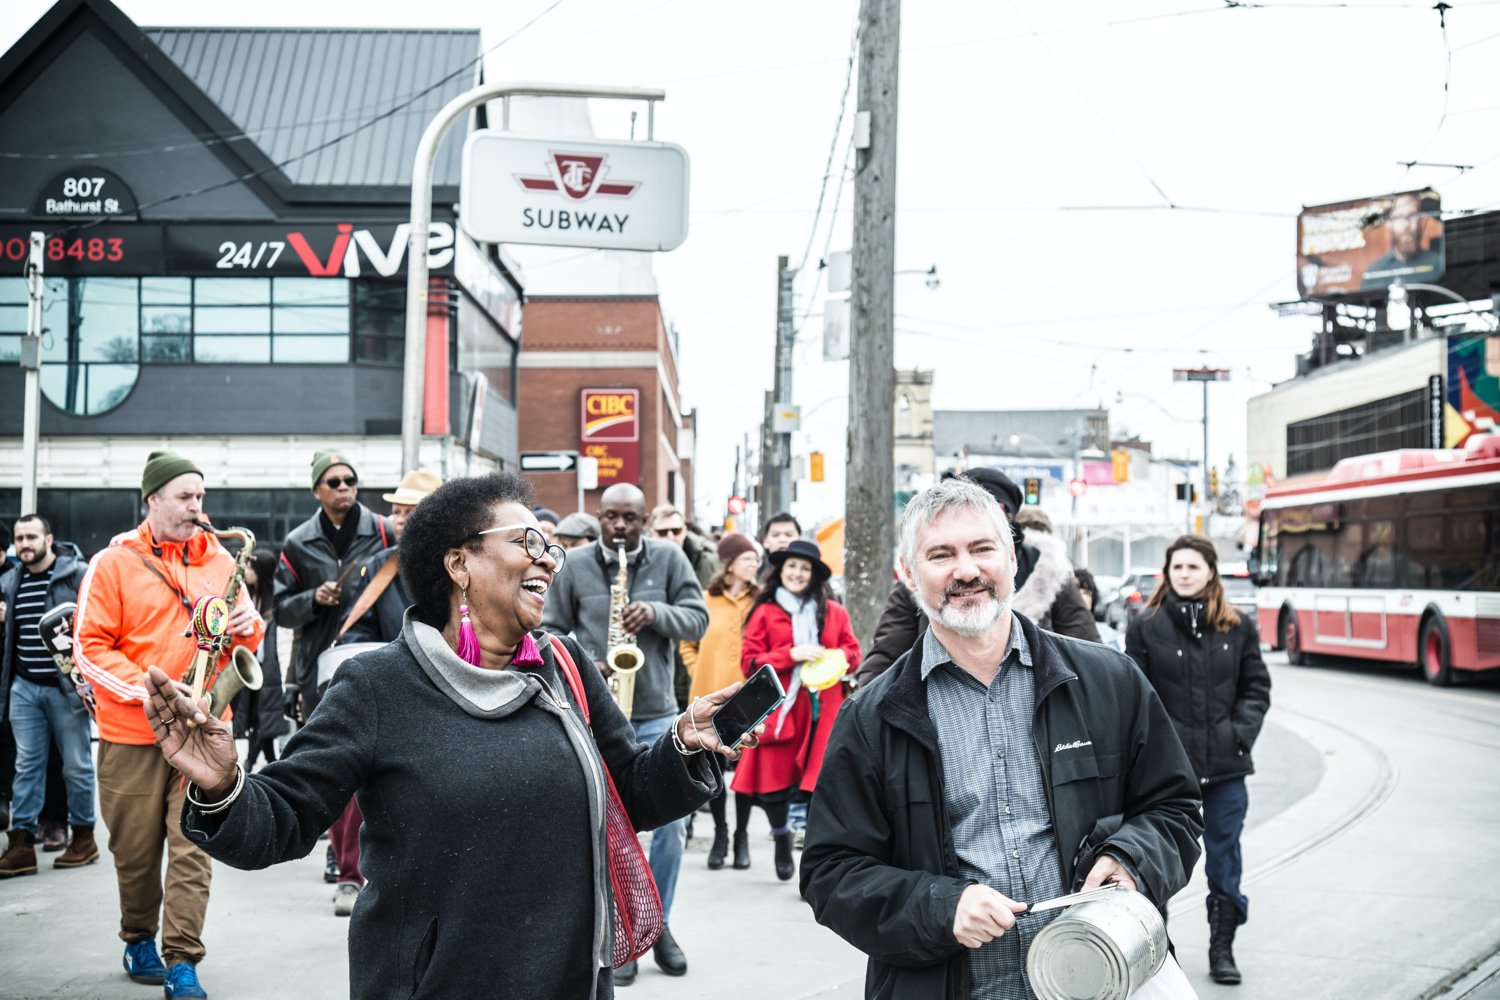 A man and a woman lead a parade down a busy street.